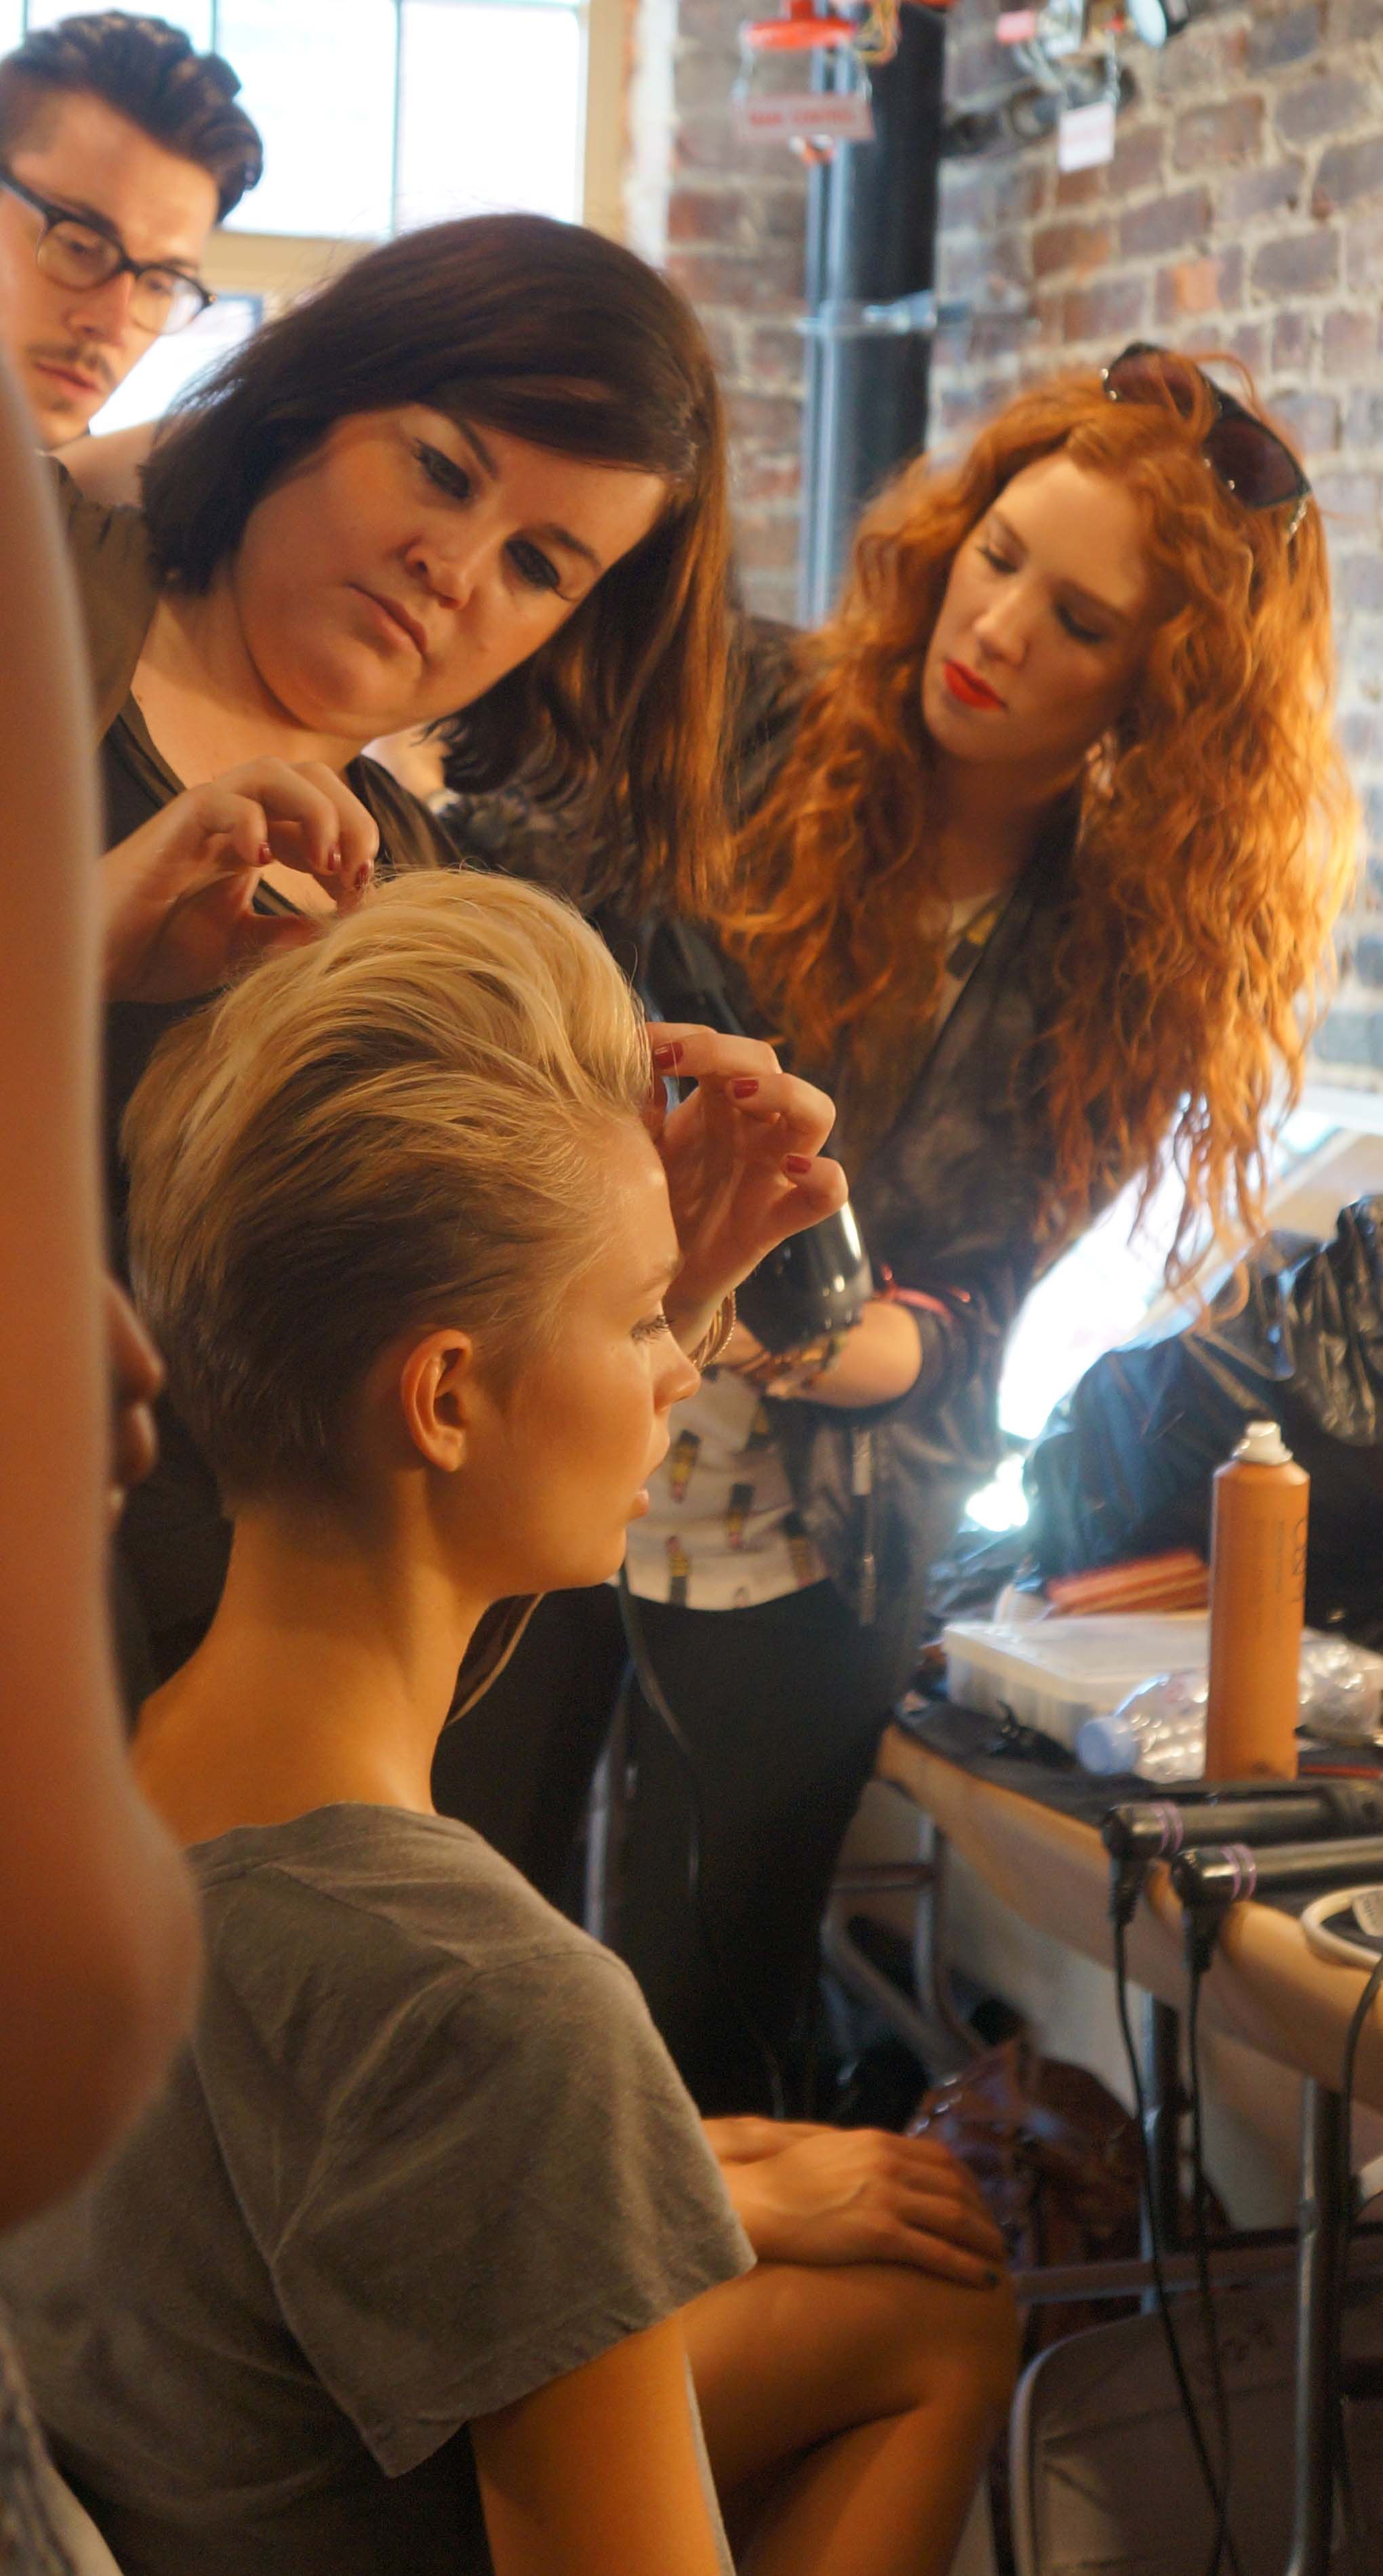 Janelle Chaplin adding some final touches on the hair